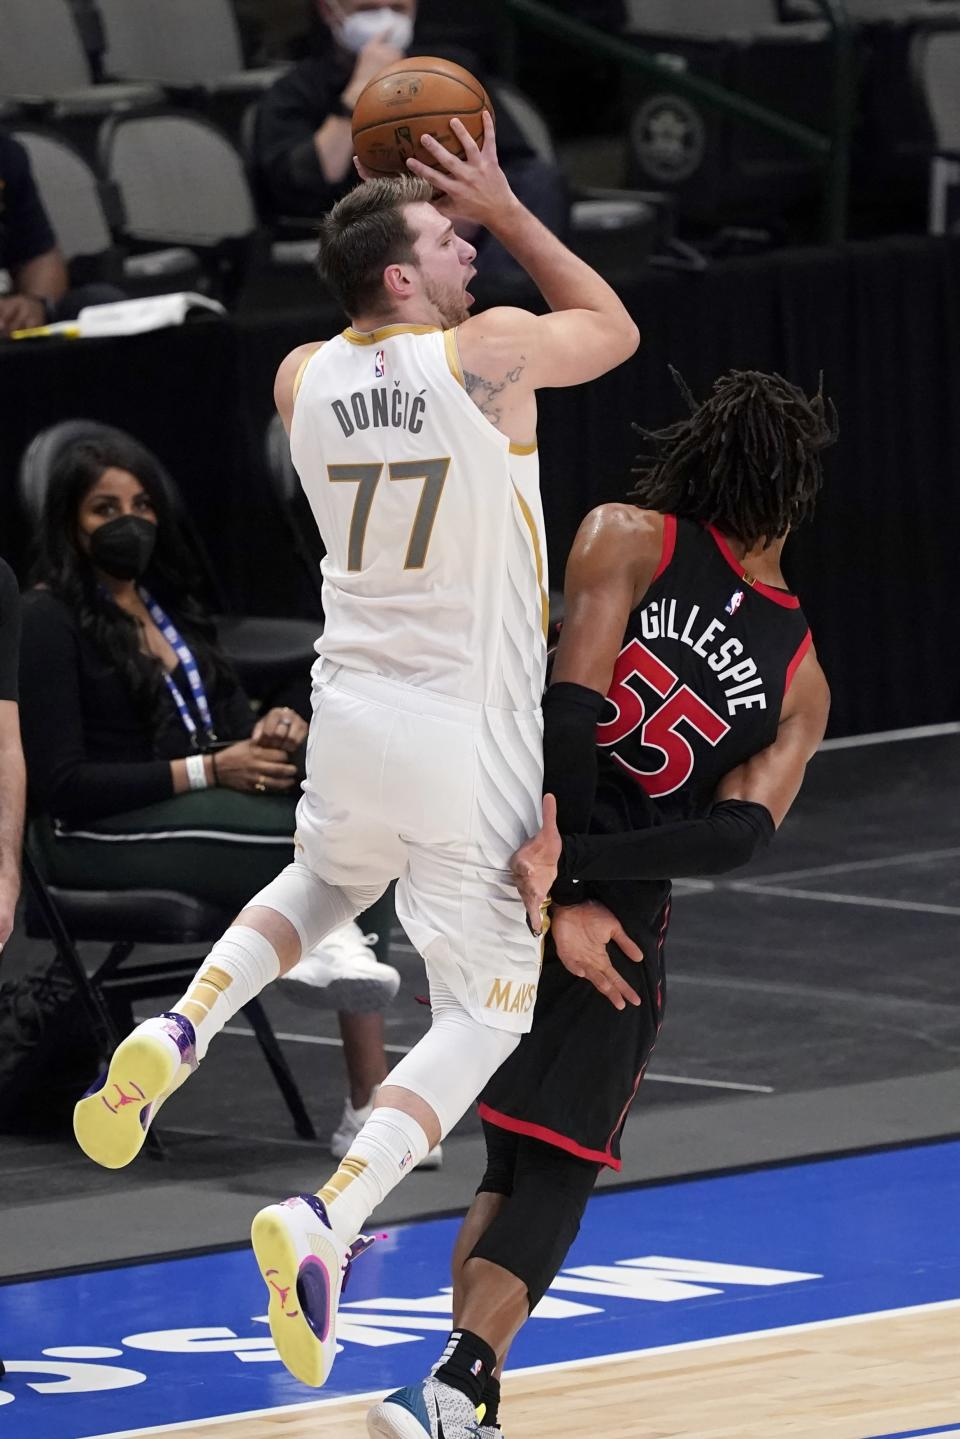 Dallas Mavericks guard Luka Doncic (77) is fouled by Toronto Raptors forward Freddie Gillespie (55) on a three-point shot attempt in the second half of an NBA basketball game in Dallas, Friday, May 14, 2021. (AP Photo/Tony Gutierrez)